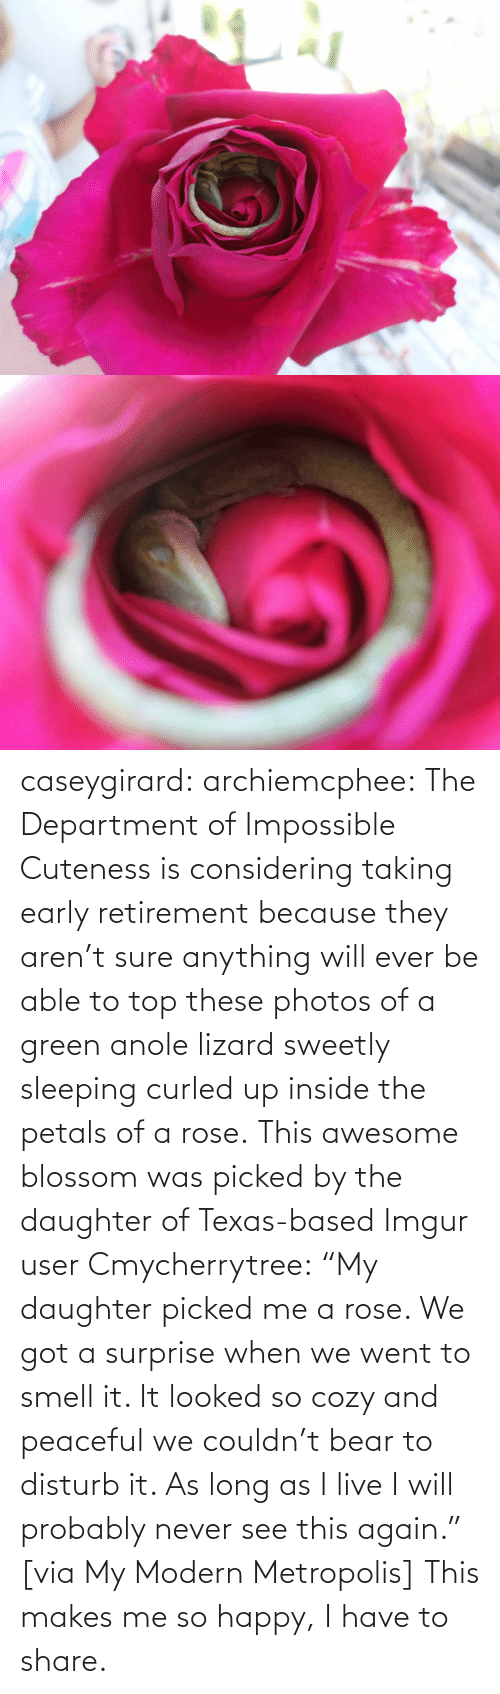 "daughter: caseygirard:  archiemcphee:   The Department of Impossible Cuteness is considering taking early retirement because they aren't sure anything will ever be able to top these photos of a green anole lizard sweetly sleeping curled up inside the petals of a rose. This awesome blossom was picked by the daughter of Texas-based Imgur user Cmycherrytree: ""My daughter picked me a rose. We got a surprise when we went to smell it. It looked so cozy and peaceful we couldn't bear to disturb it. As long as I live I will probably never see this again."" [via My Modern Metropolis]   This makes me so happy, I have to share."